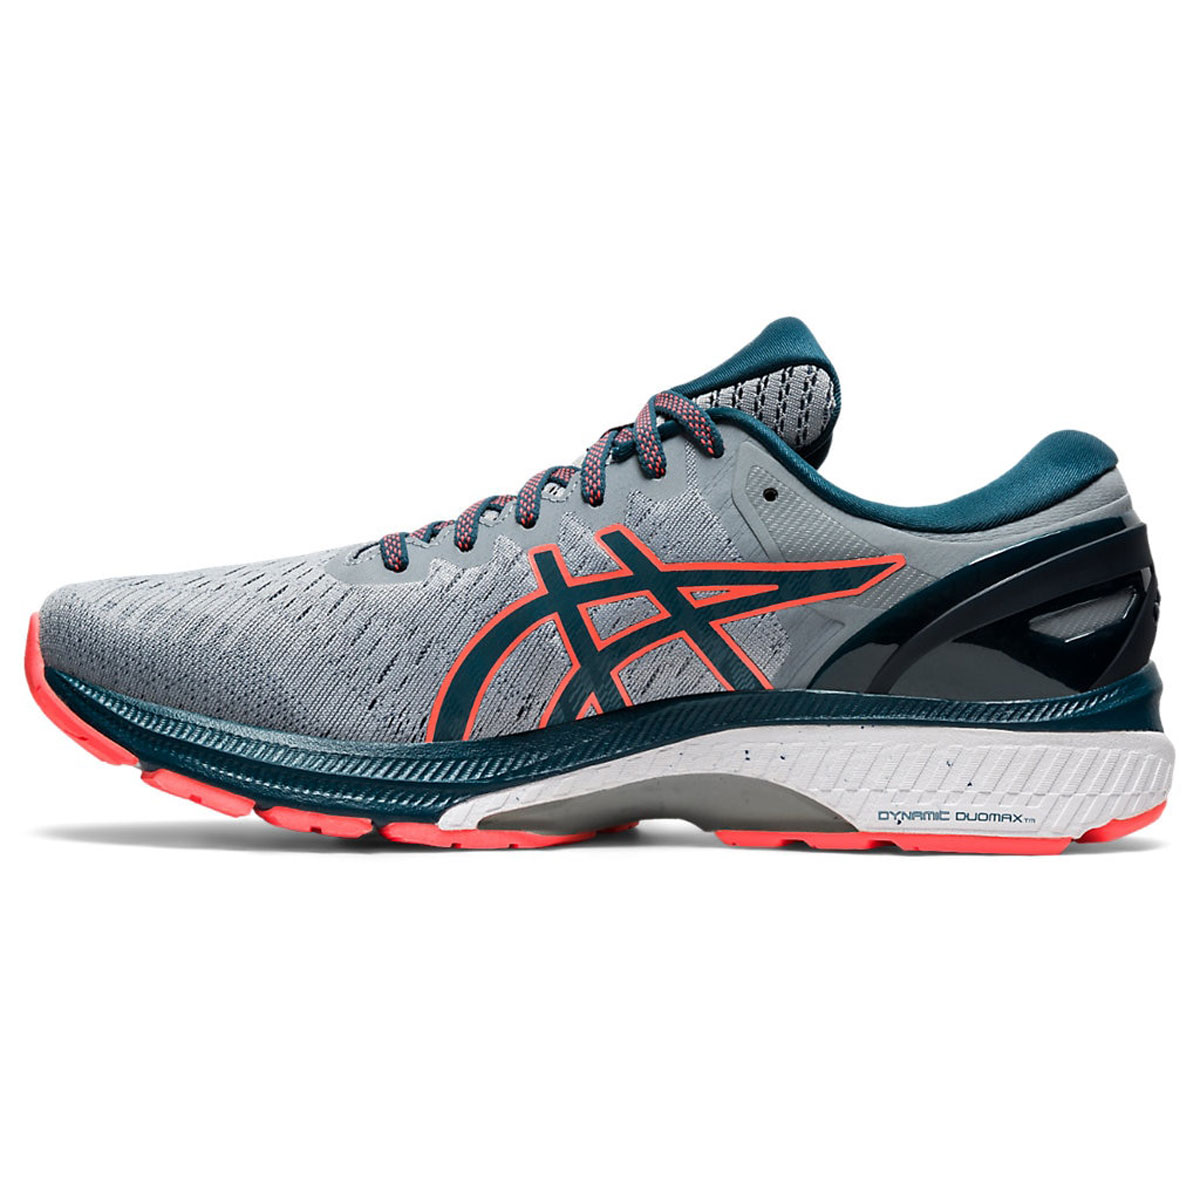 Men's Asics GEL-Kayano 27 Running Shoe - Color: Sheet Rock/Magn (Regular Width) - Size: 6, Sheet Rock/Magnetic Blue, large, image 2